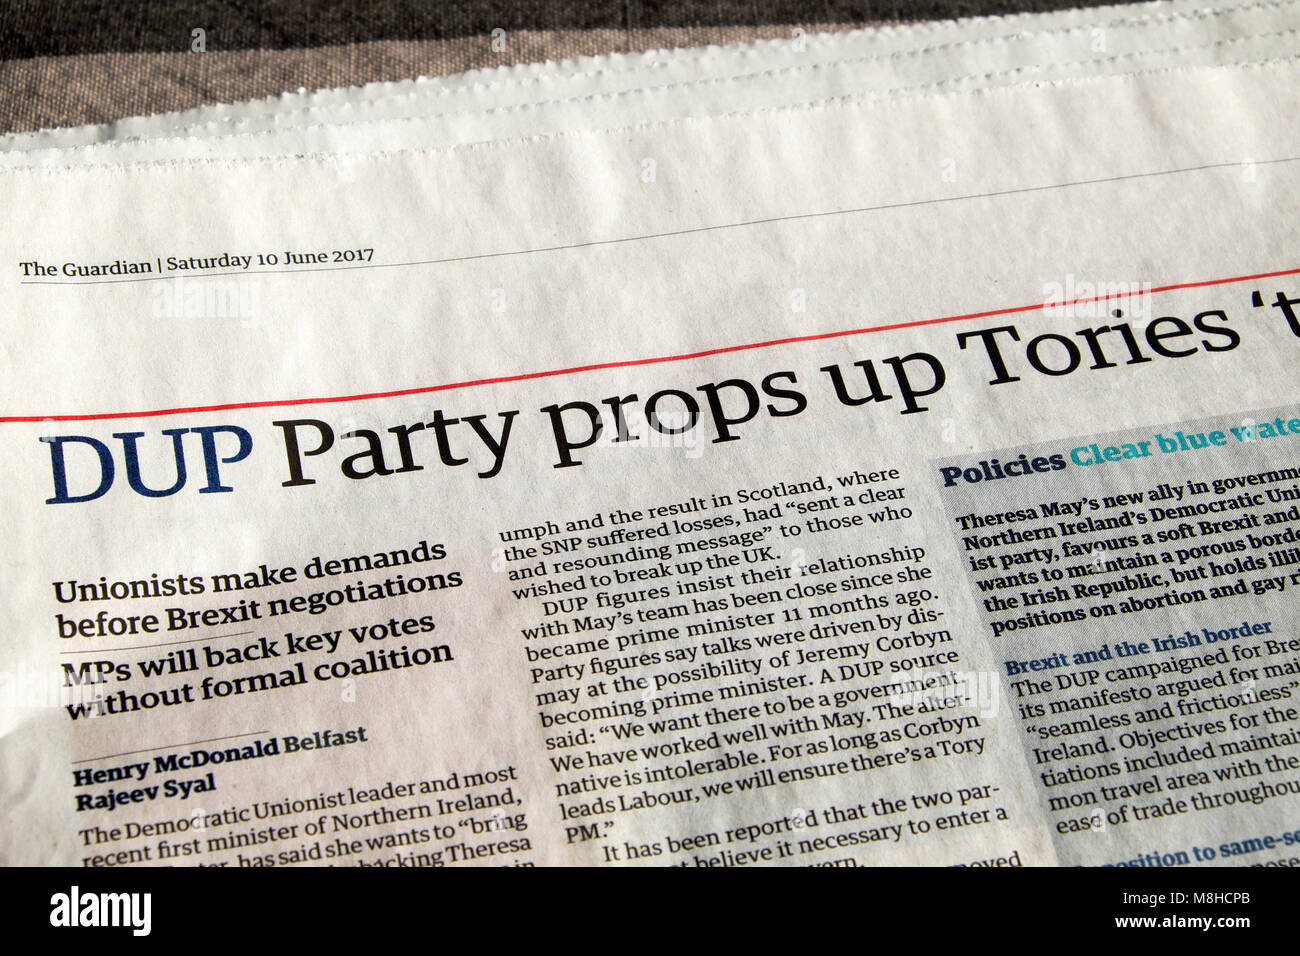 'DUP Party props up Tories 'to bring stability' 'Guardian newspaper   headline article 10 June 2017 - Stock Image